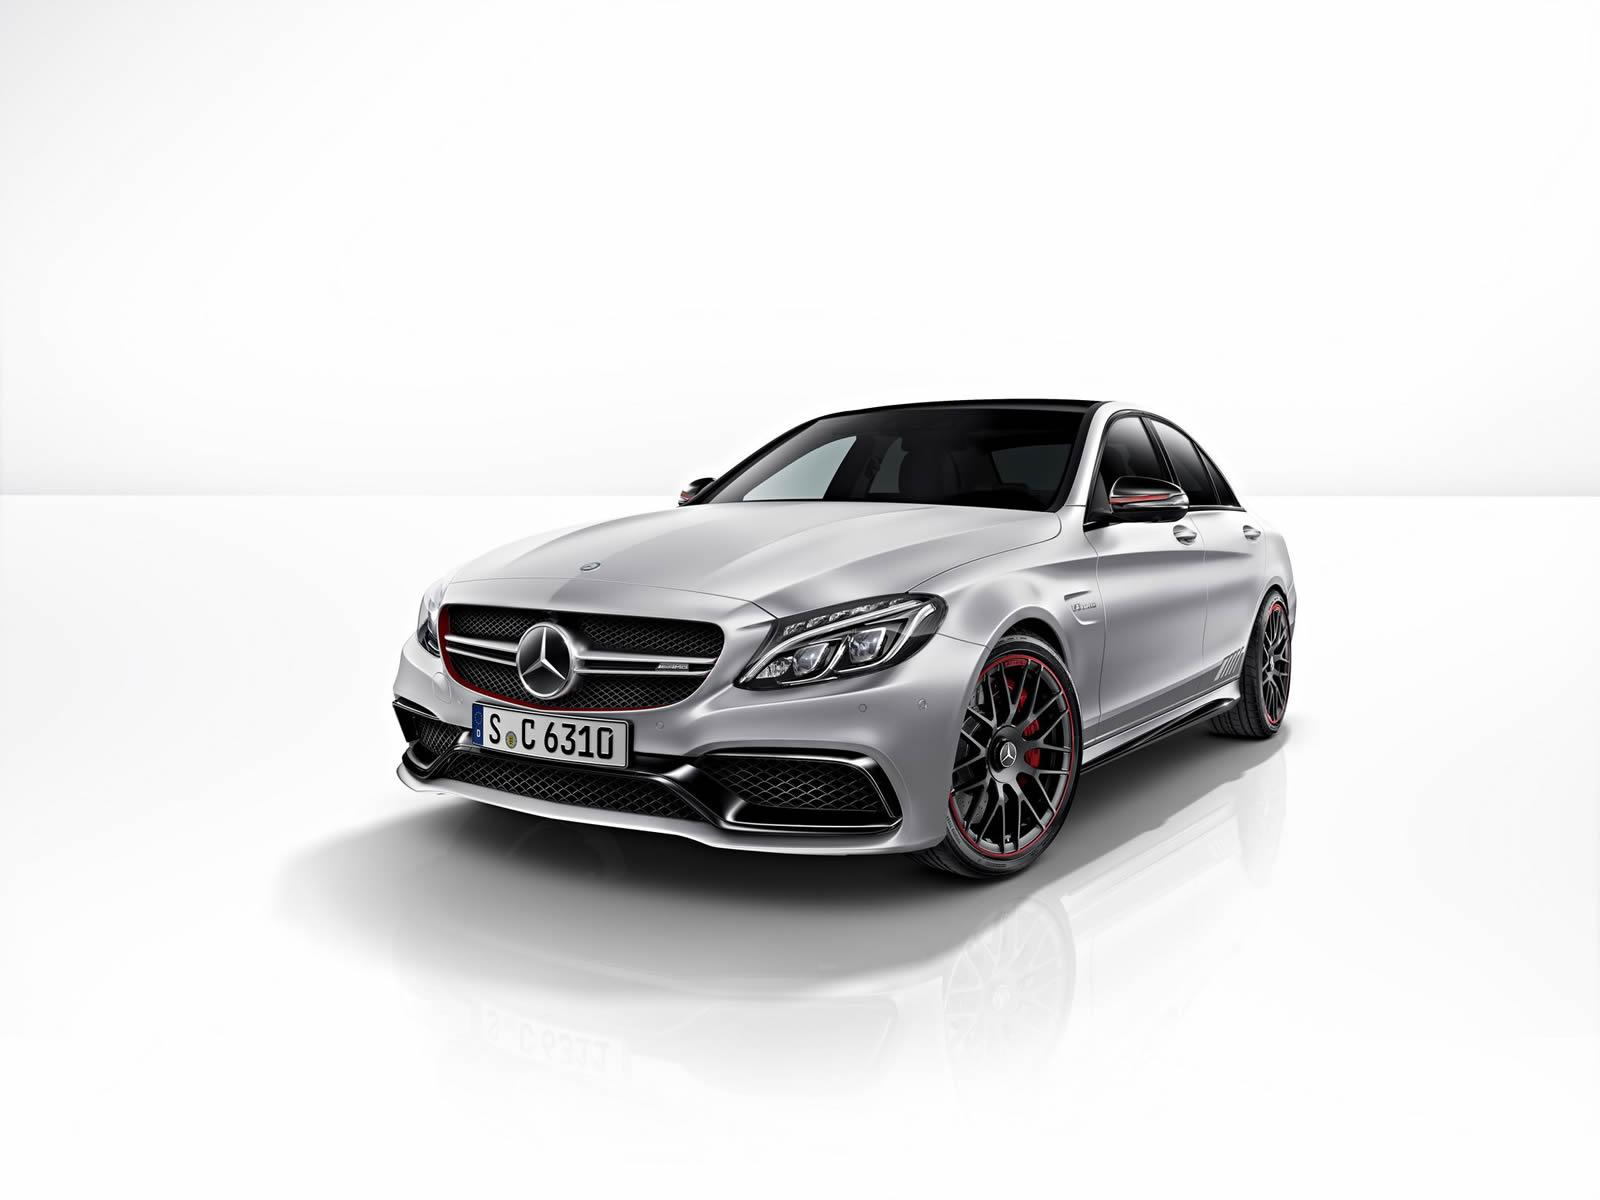 Official 2015 mercedes amg c63 edition 1 gtspirit for Mercedes benz c63 amg black edition